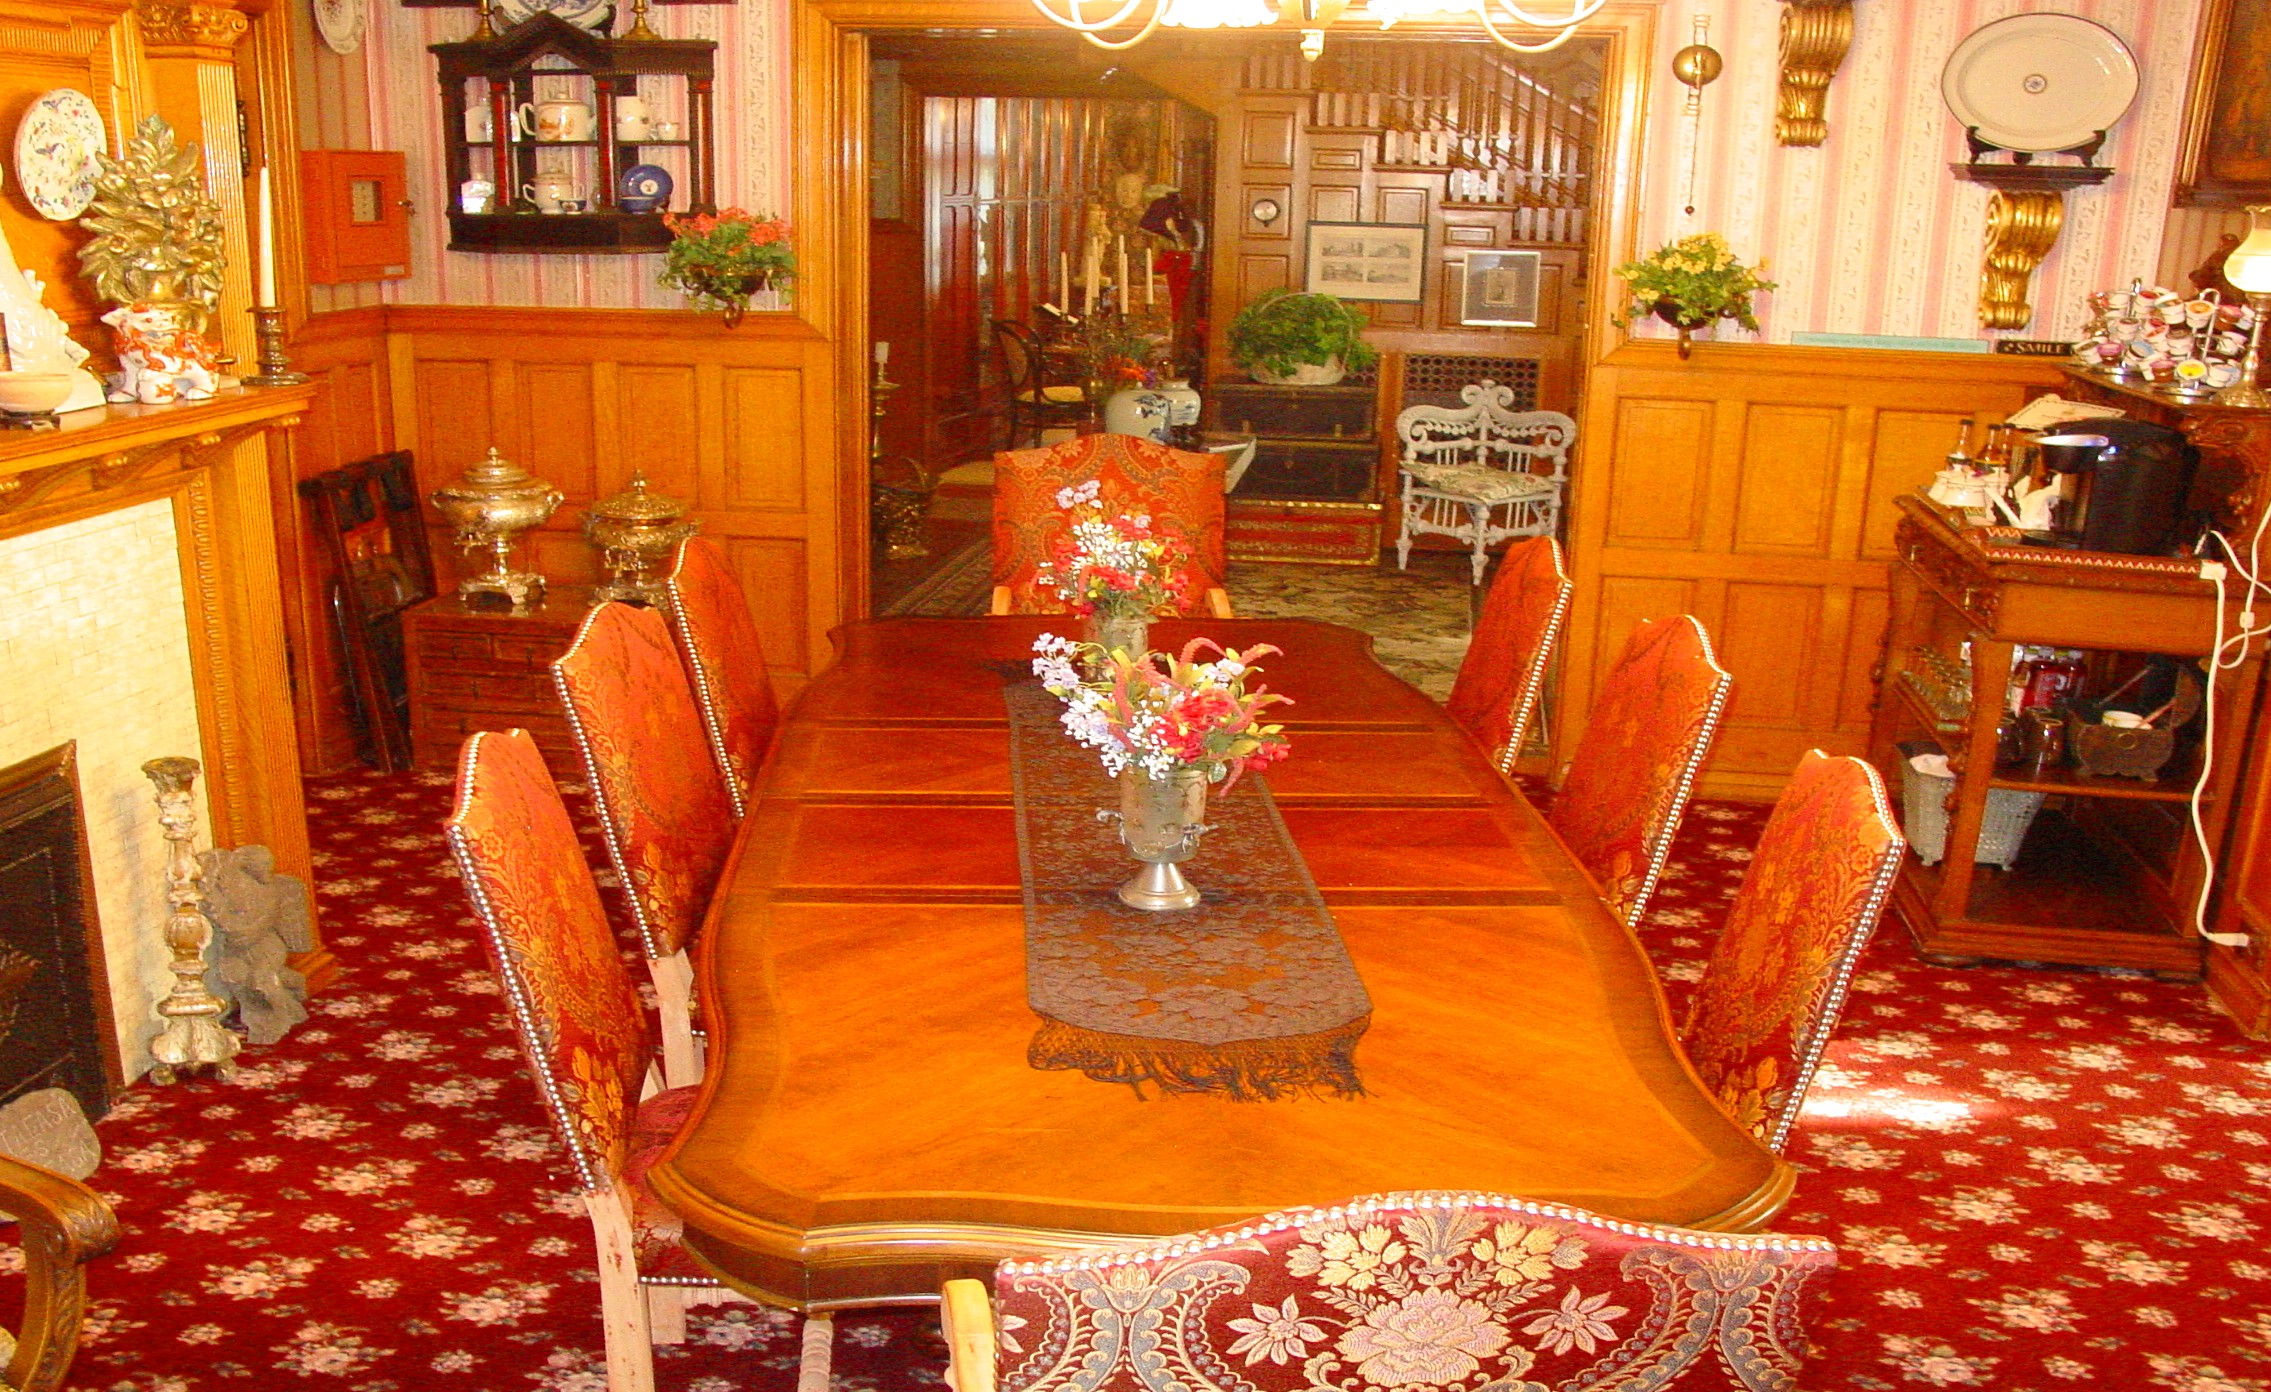 A View from the Dining Room